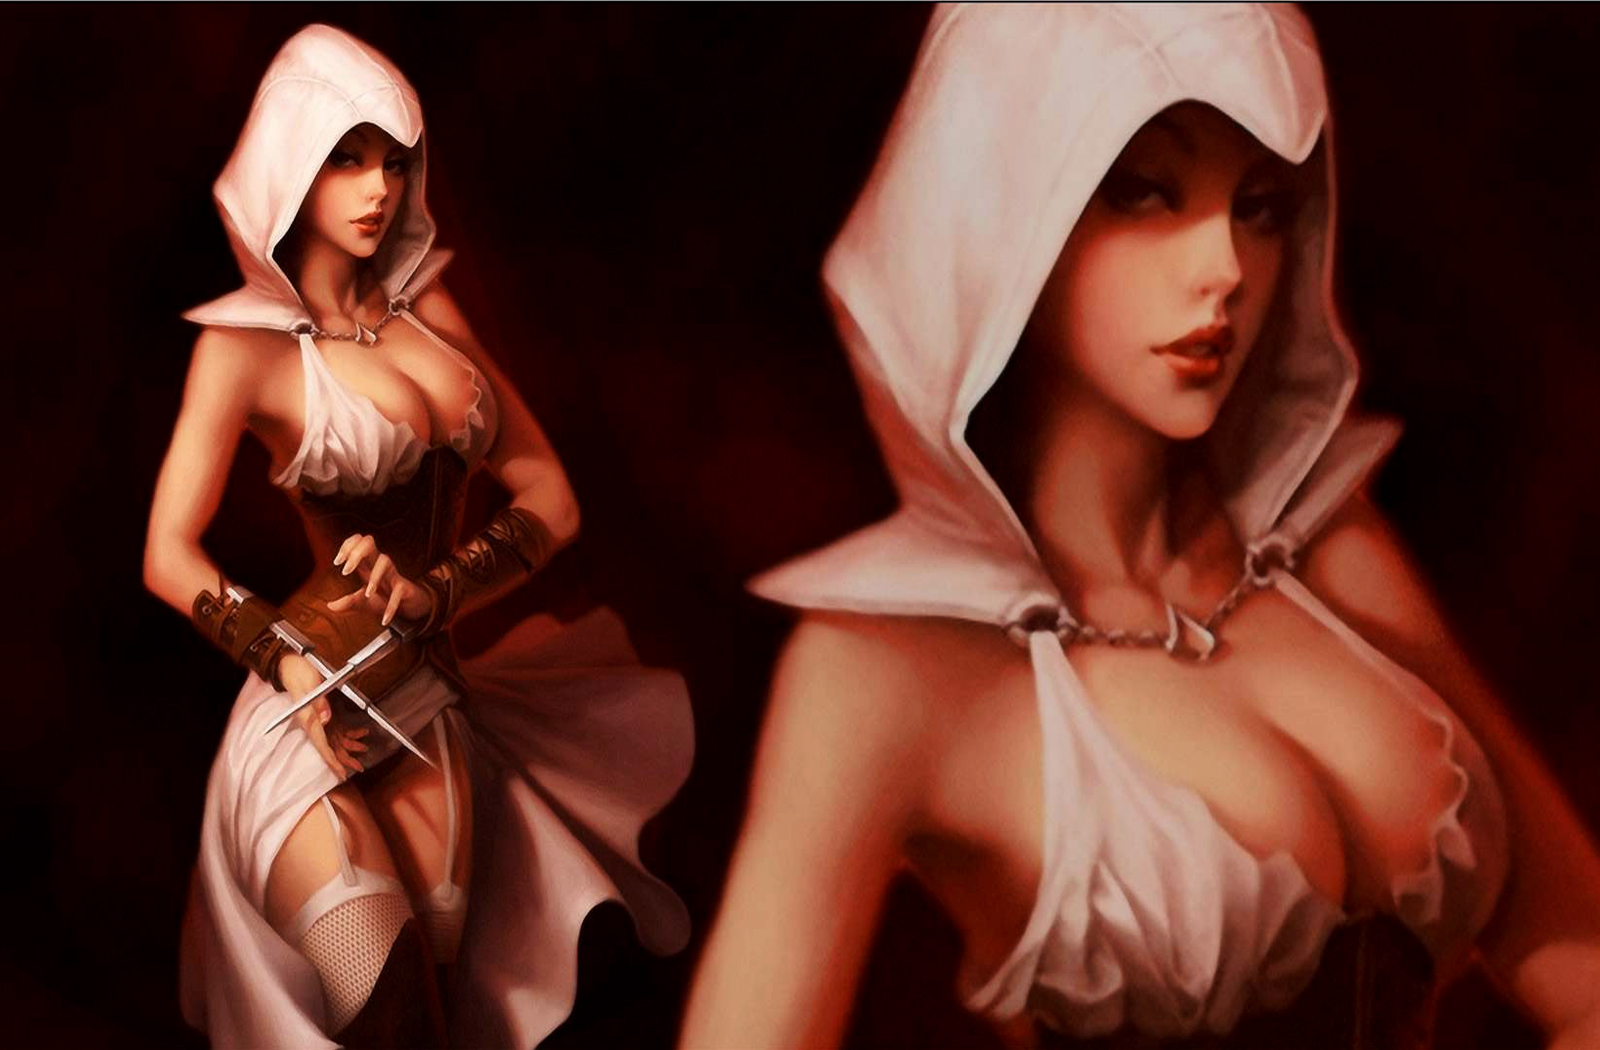 Nude mod assassin s creed brotherhood pron wild girl